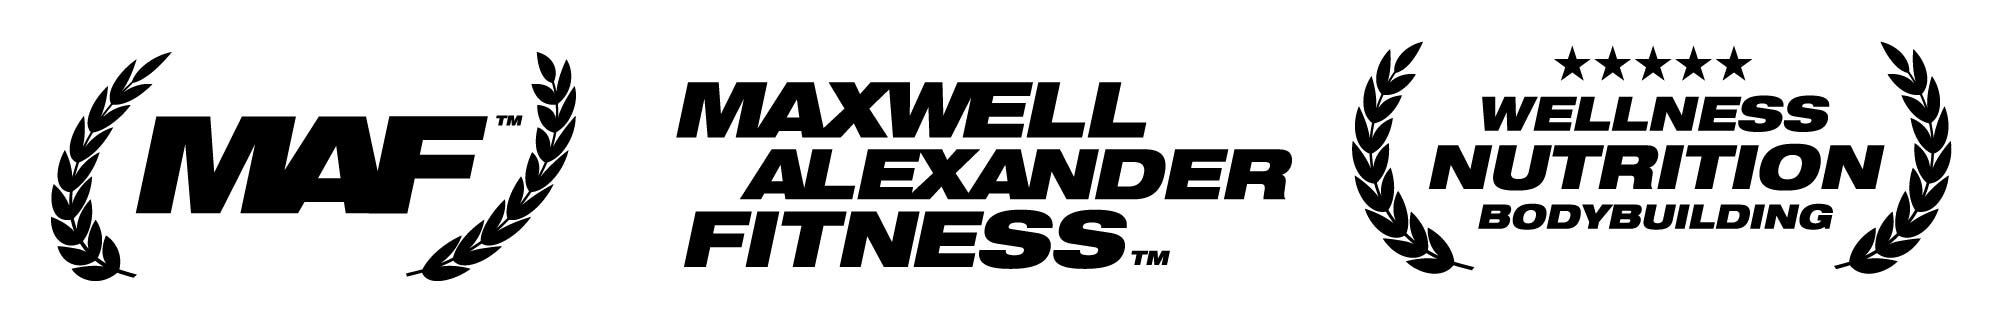 Maxwell Alexander Fitness - Wellness, Nutrition, Bodybuilding